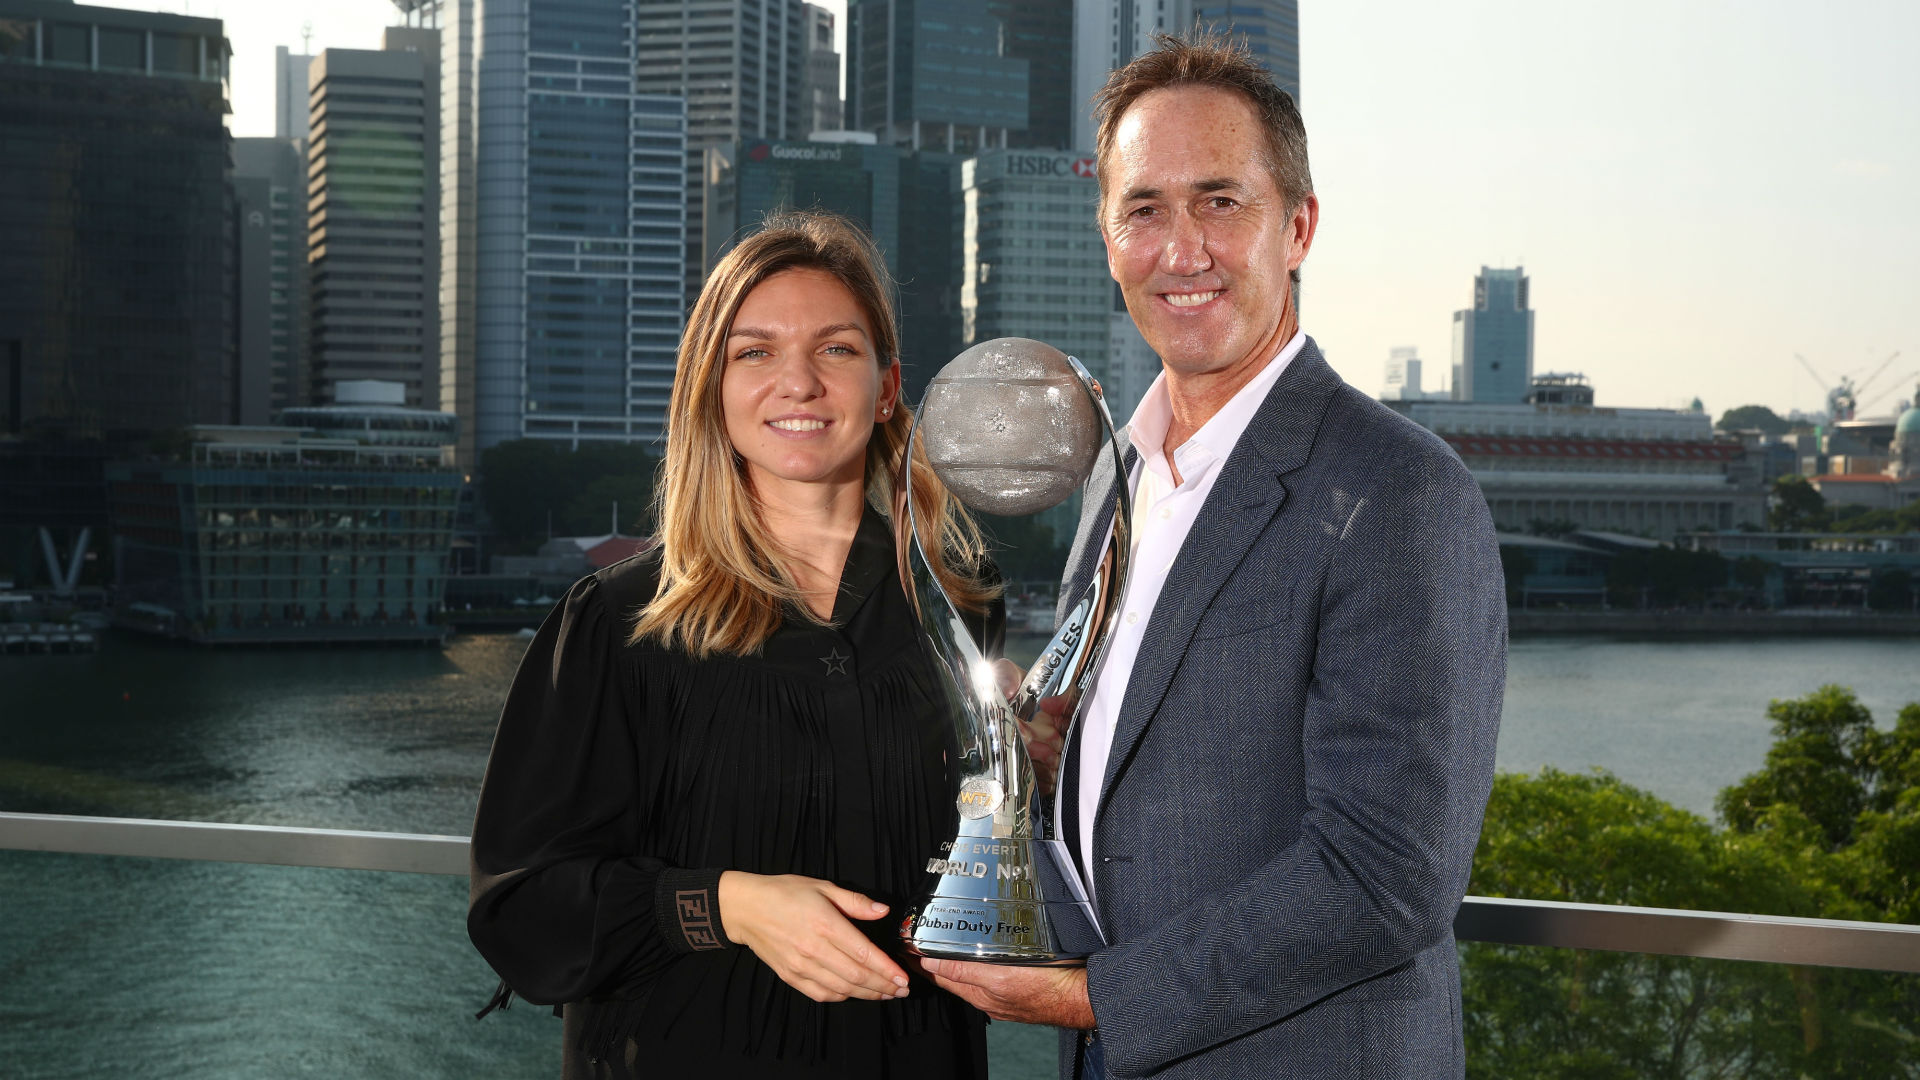 Simona Halep's former coach, Darren Cahill, says the Wimbledon champion is among 20 women who could win the US Open.